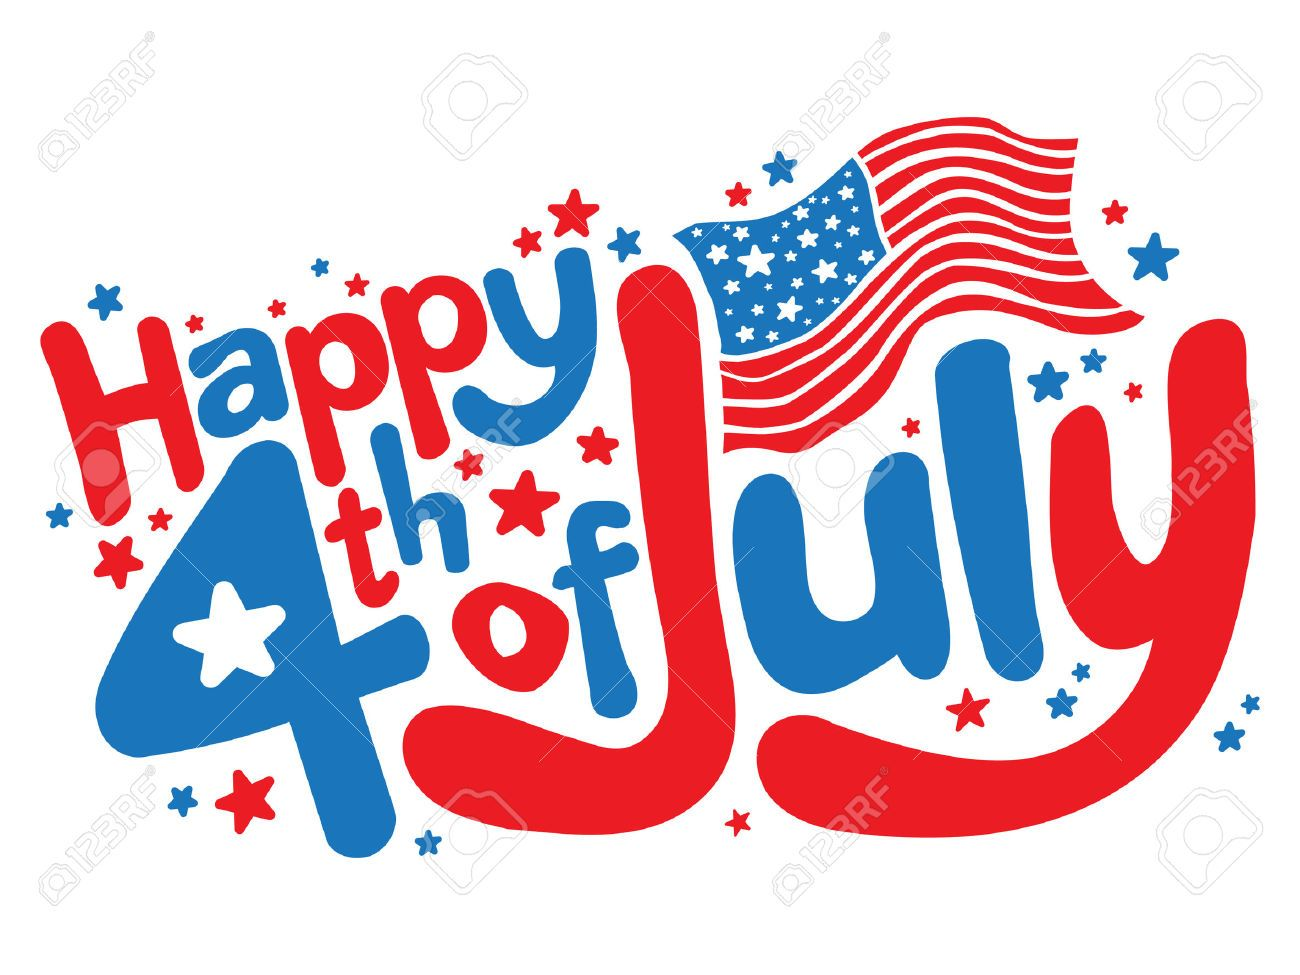 medium resolution of happy 4th of july fun text vector graphic royalty free cliparts